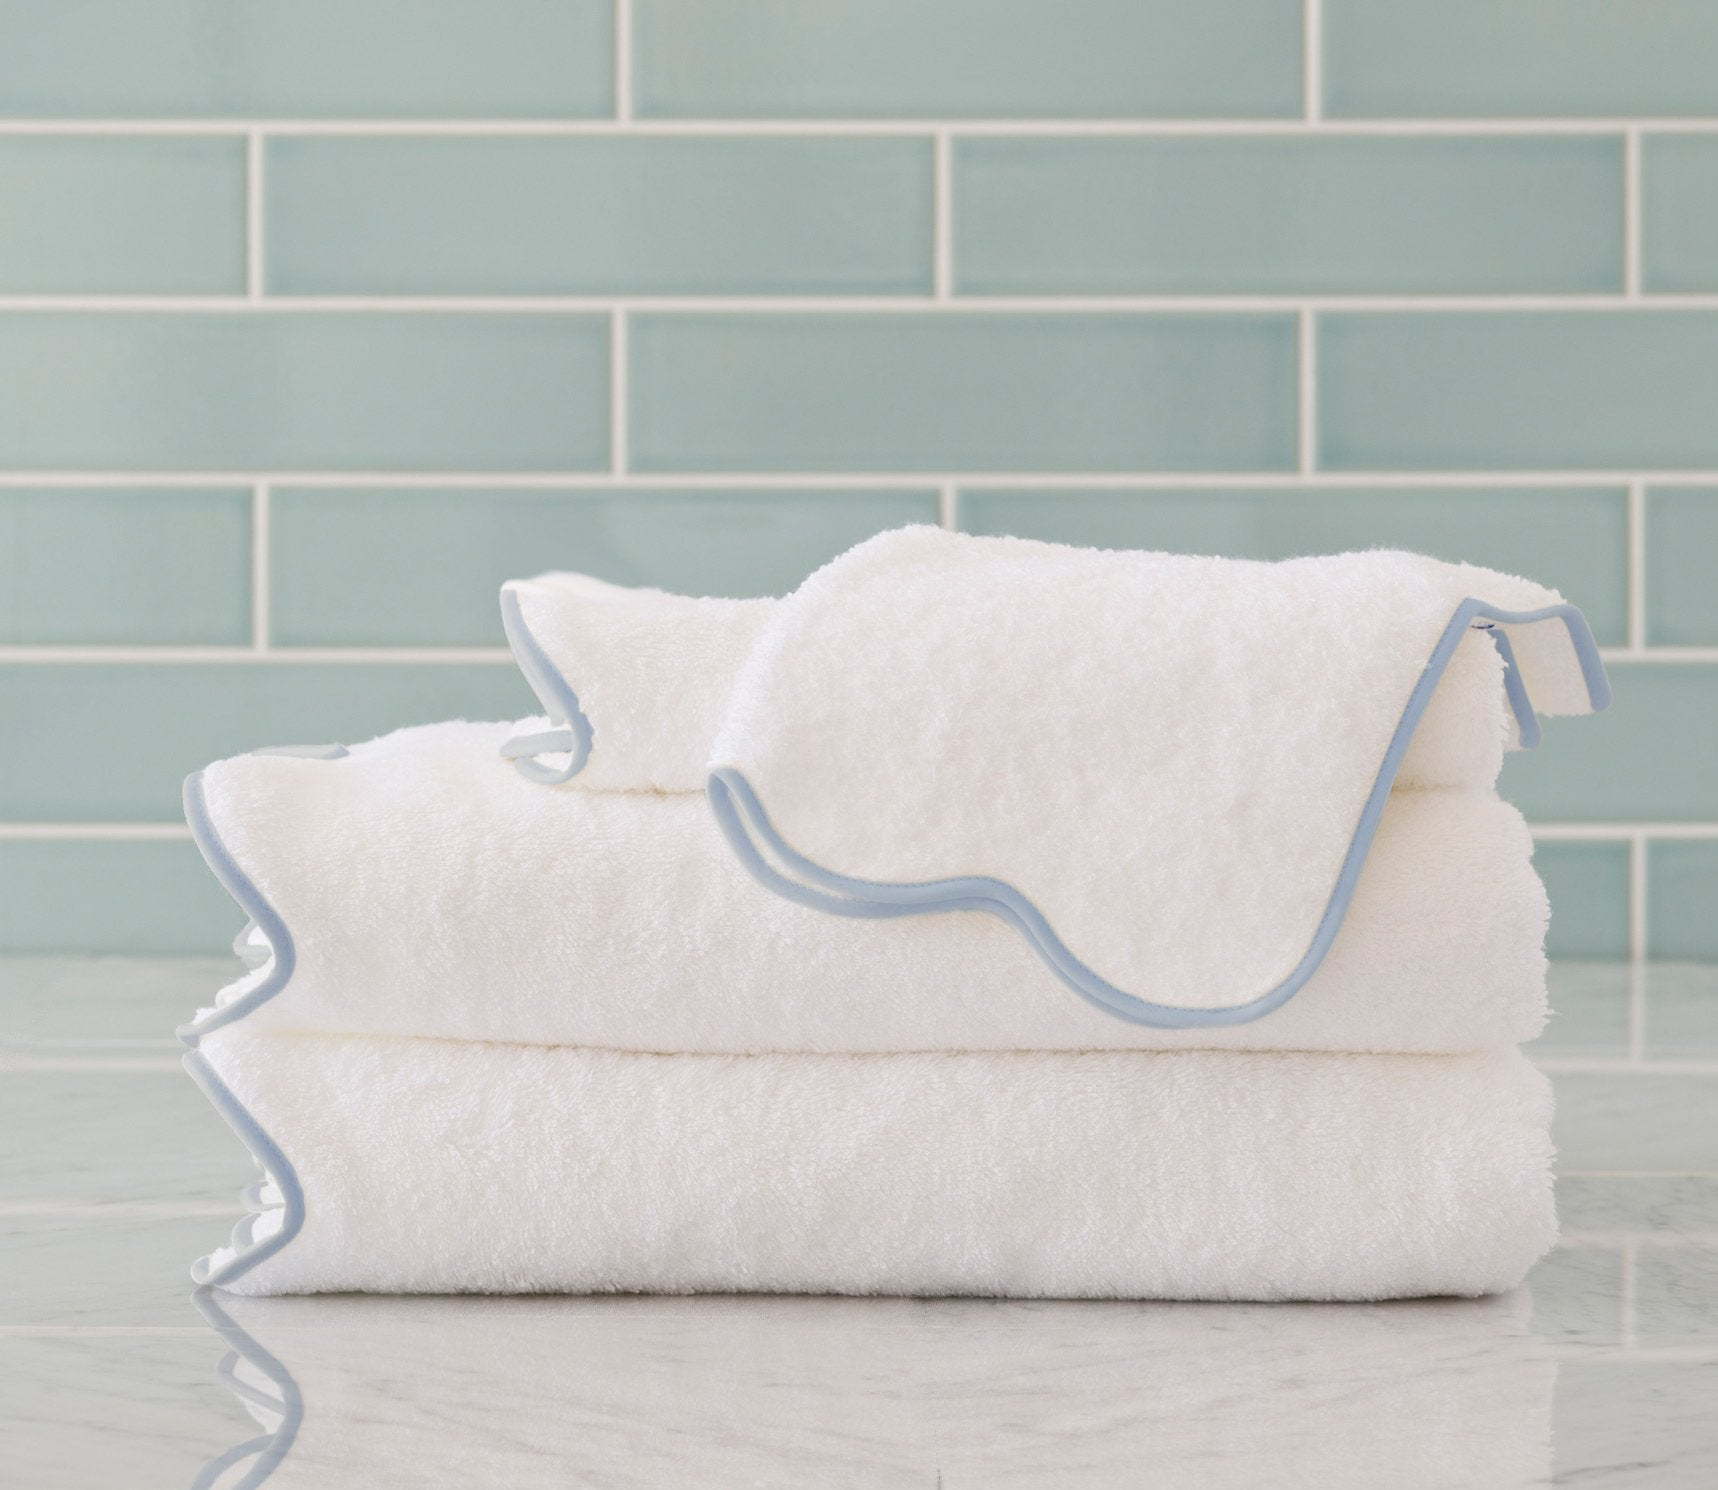 Scallop Bath Towels Custom Trim Product Image 1